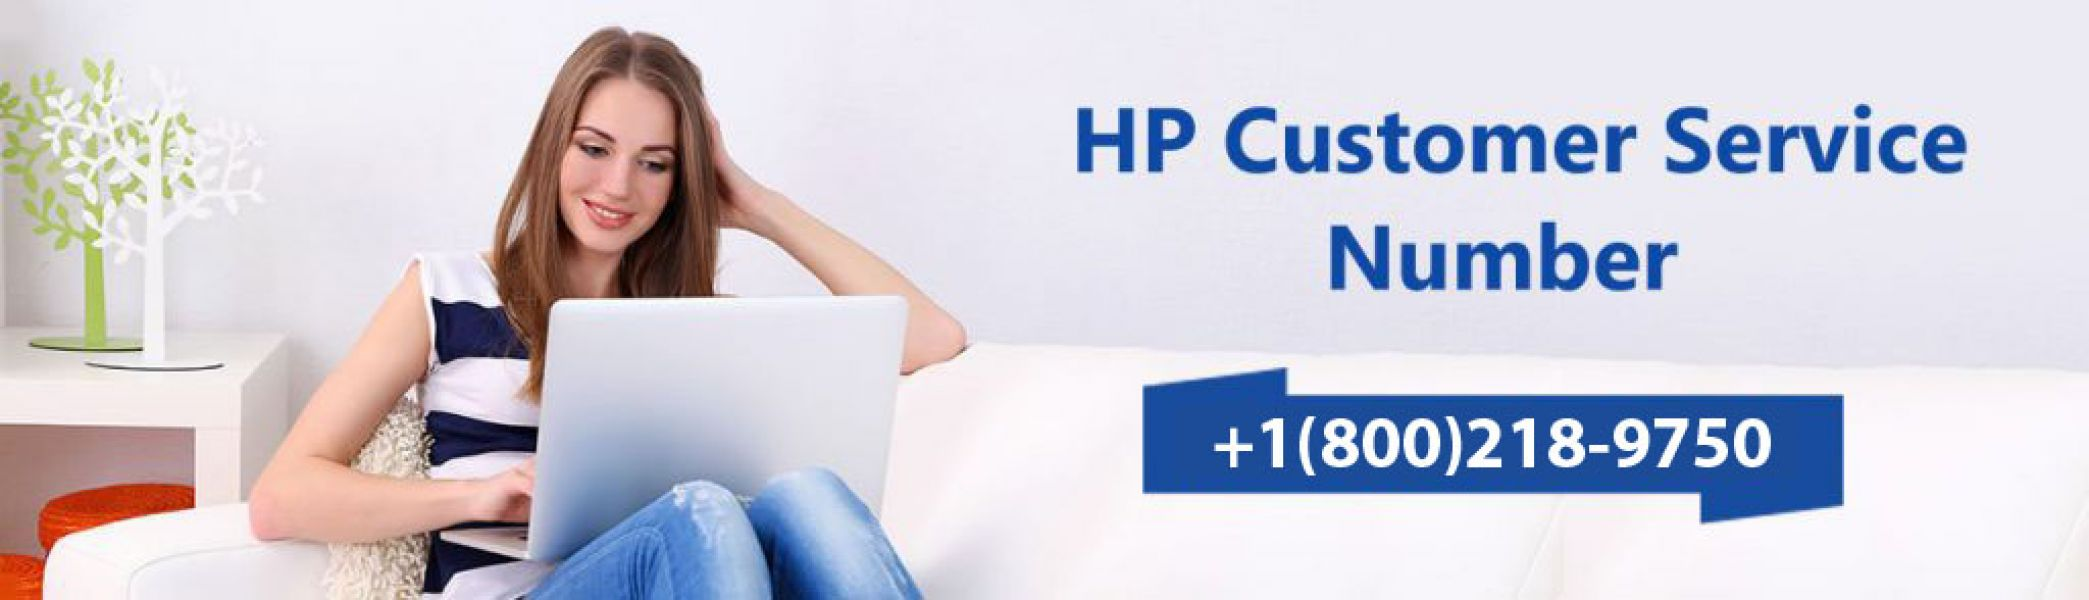 HP Support Phone Number +1-800-218-9750